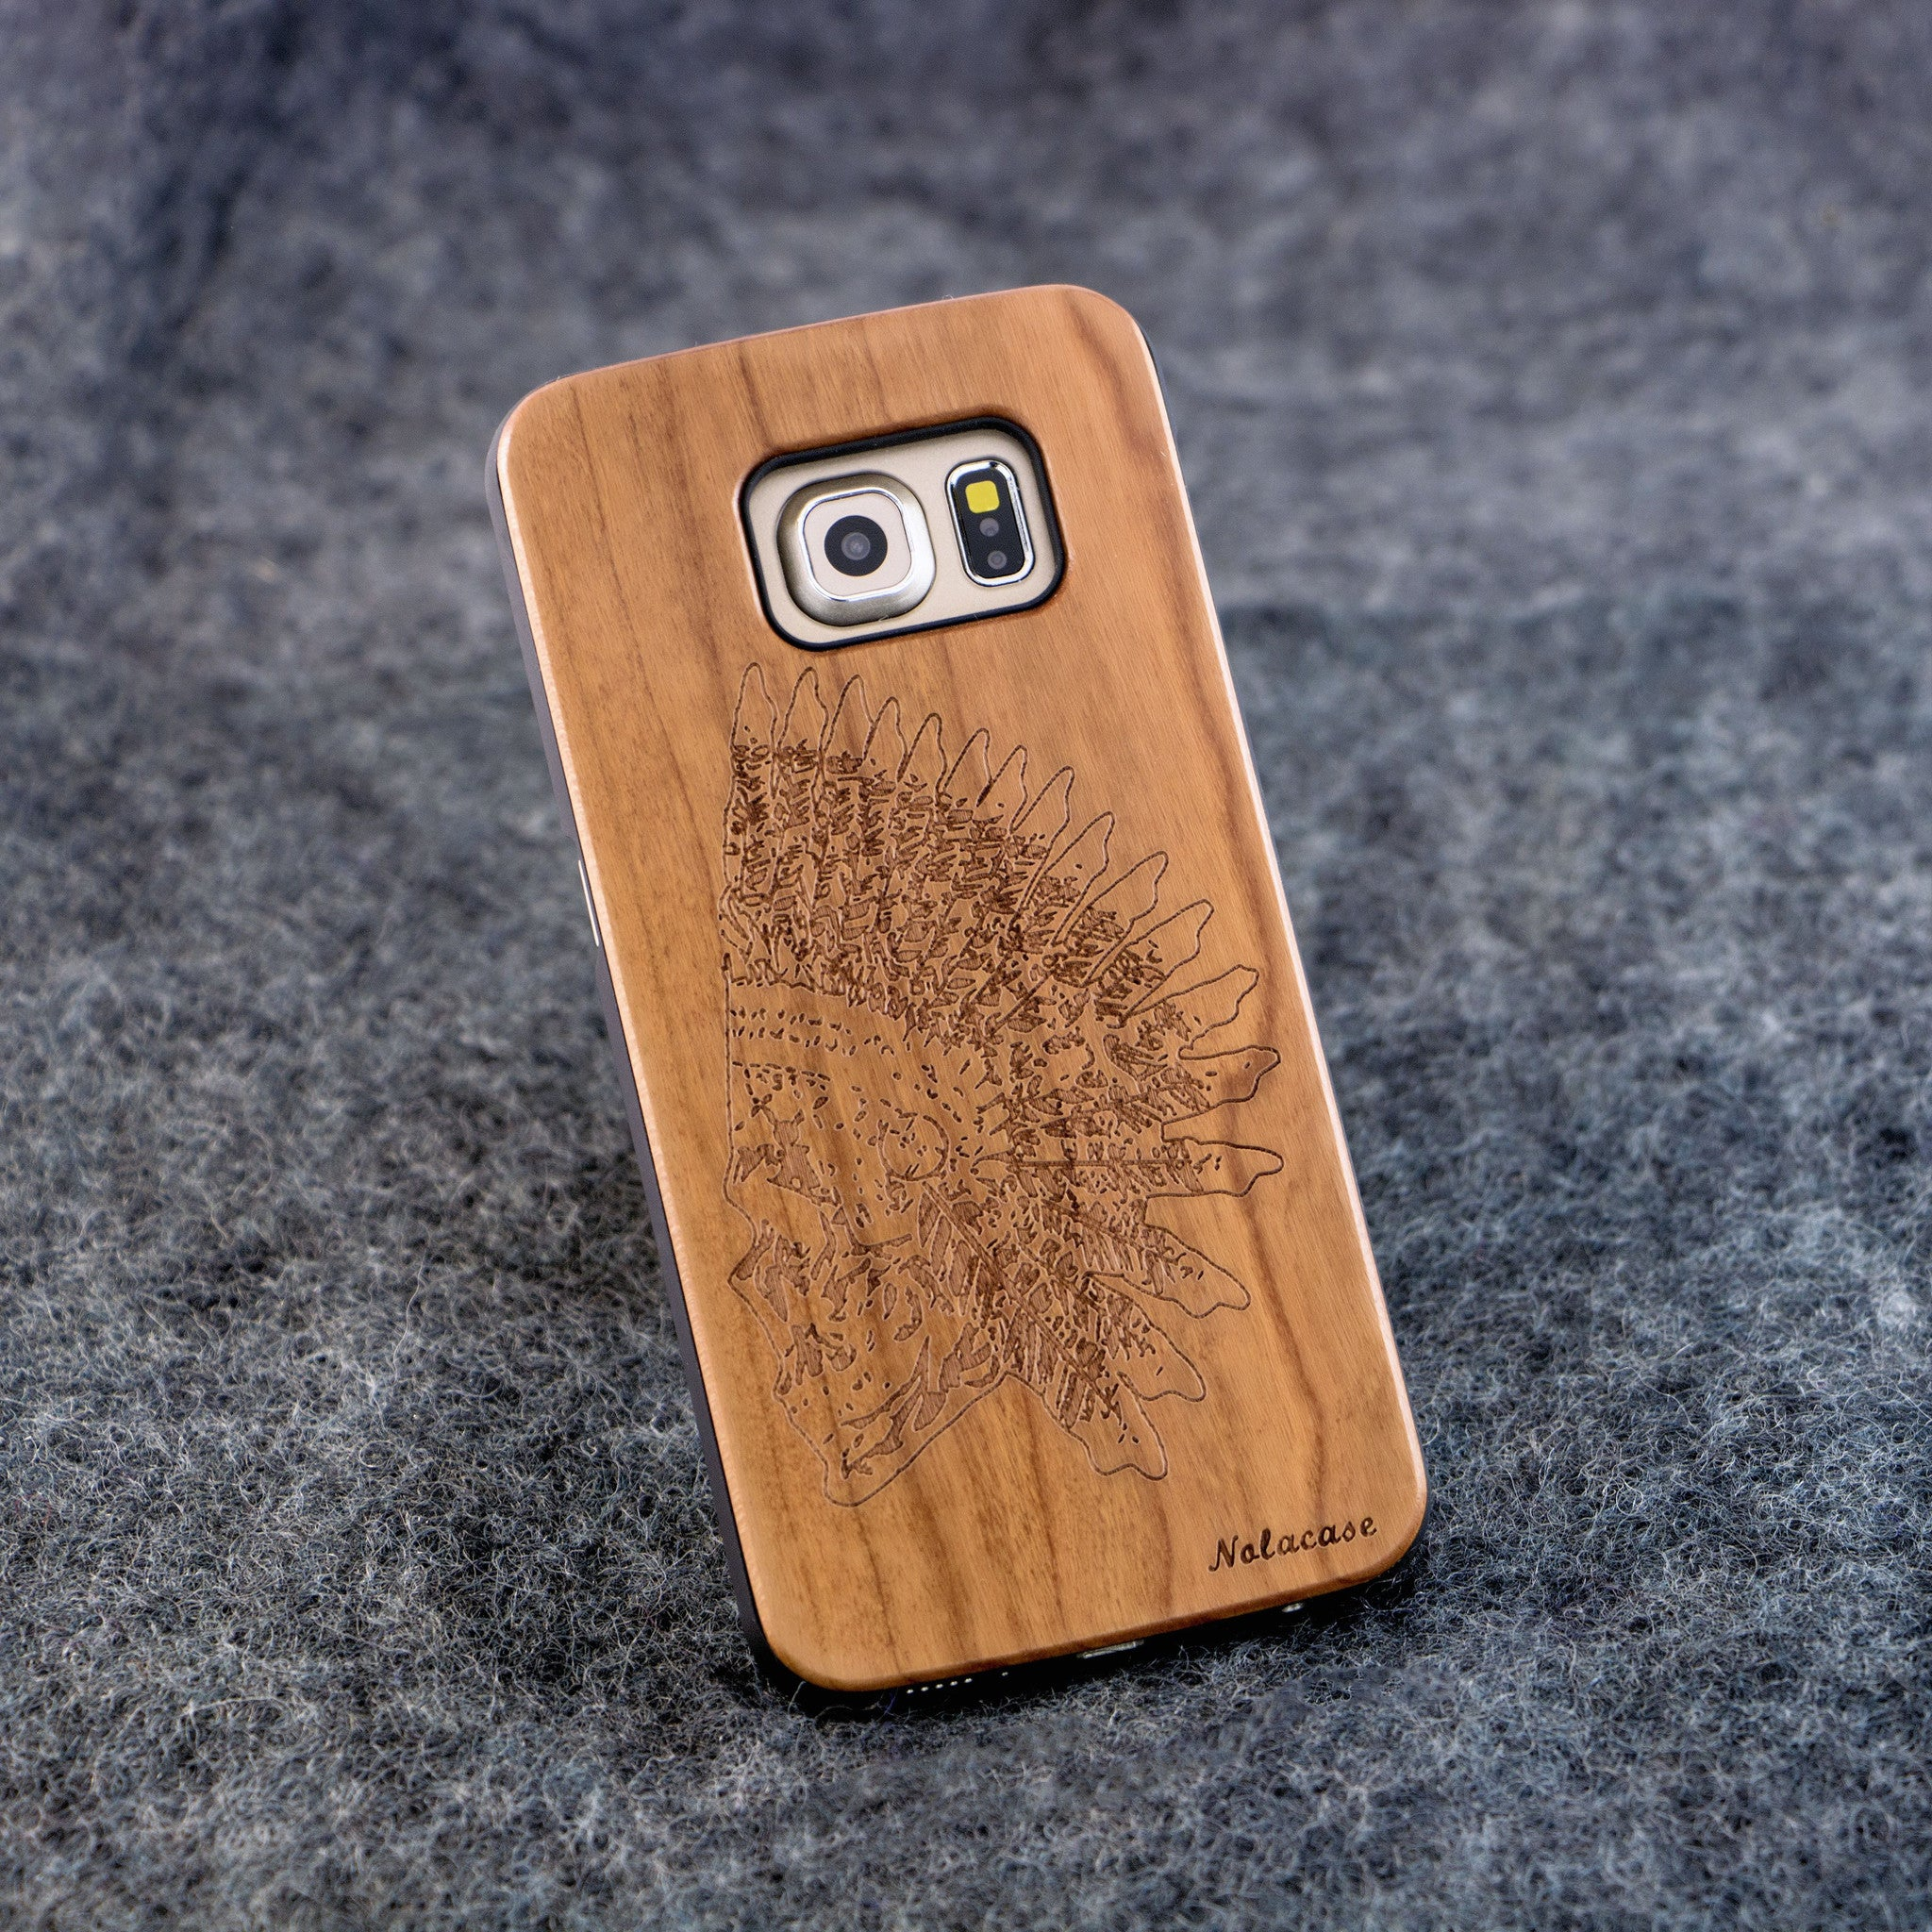 Samsung S6 Edge Indian Skull Slim Wood Case - NOLACASE